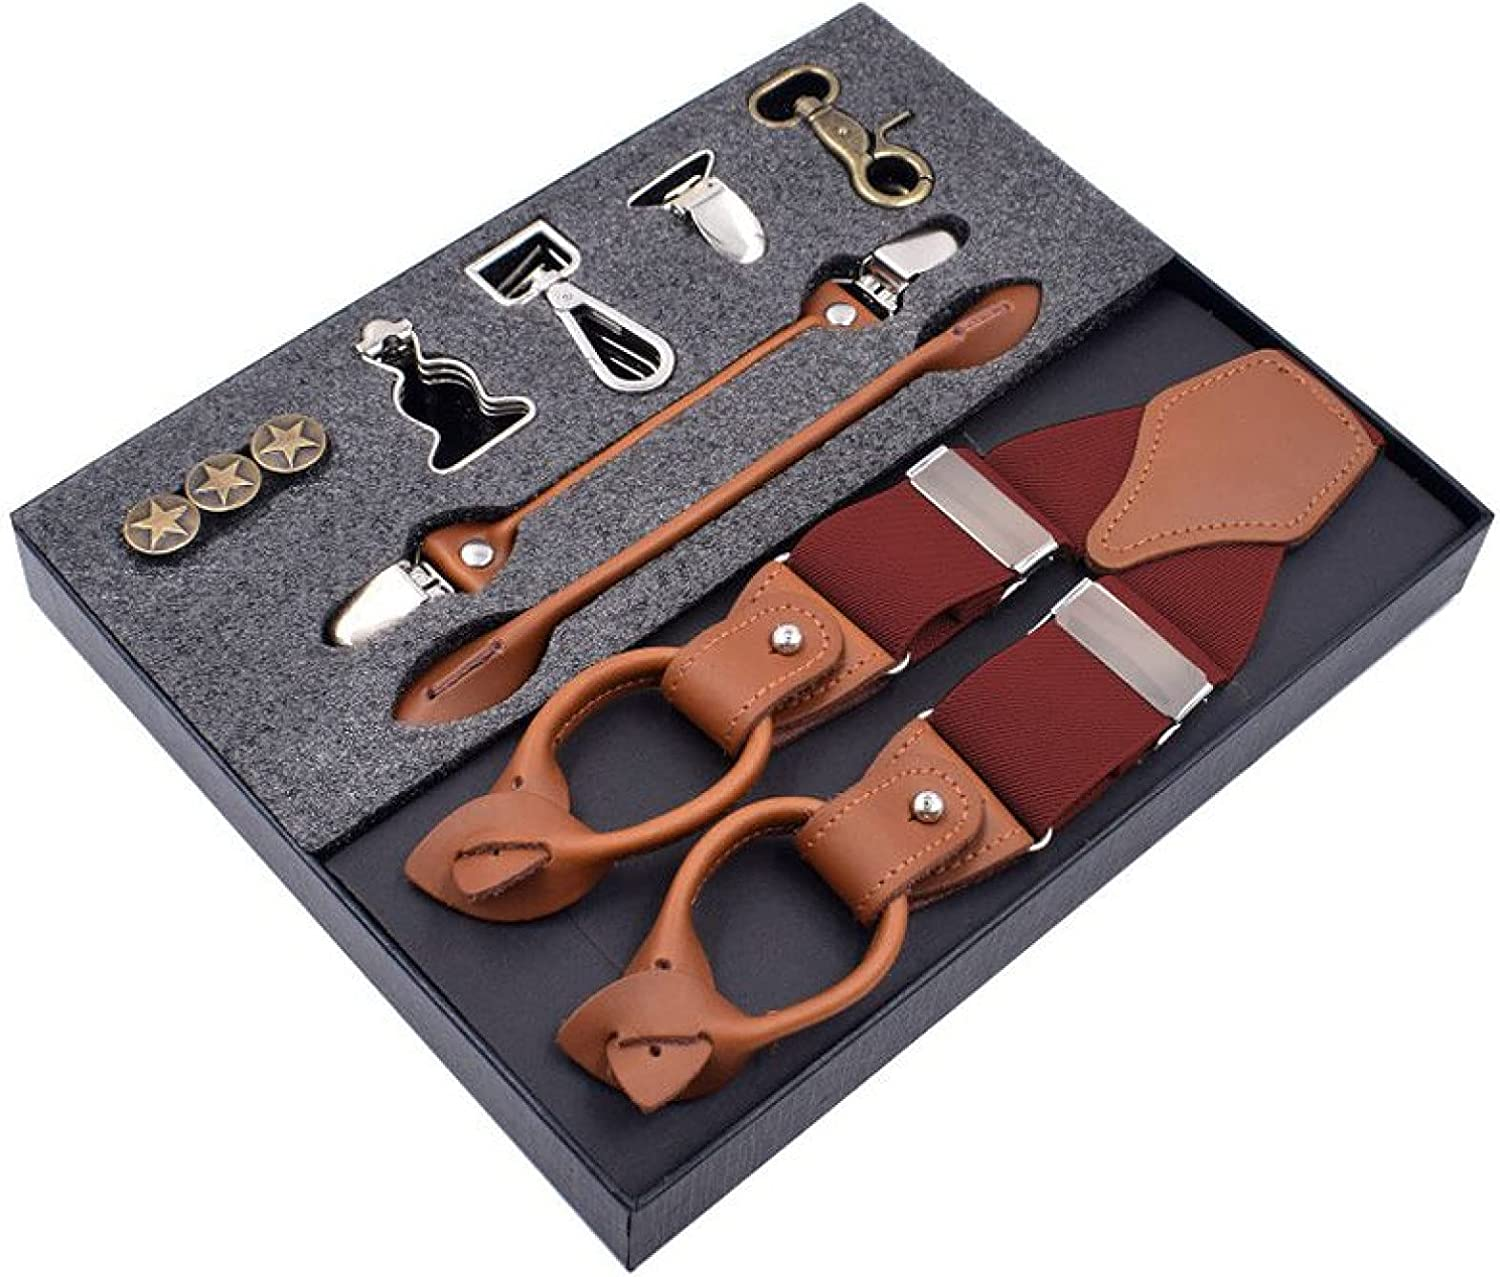 MASKUOY Man's Suspenders Fashion Braces Genuine Leather Suspenders Multifunction Strap Father/Husband's Gift